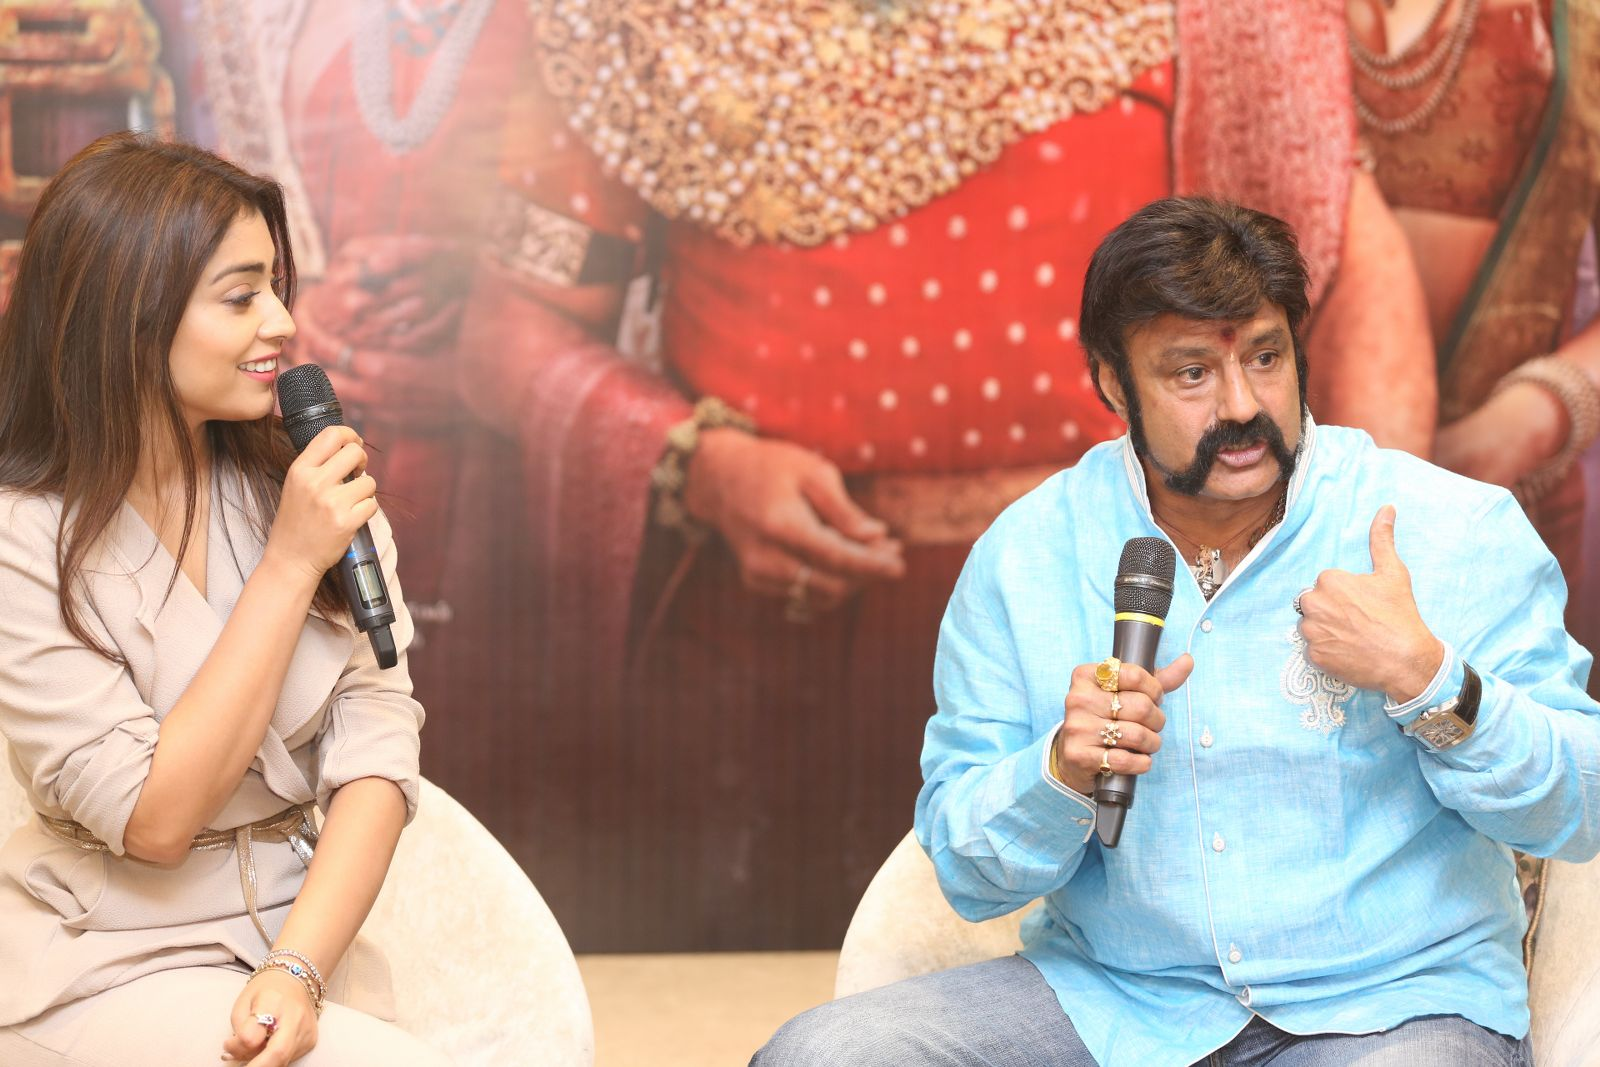 Brand new photo stills From the recent promotional event of Gautamiputra Satakarni   Gautamiputra Satakarni Brand New Stills From Promotional Event of Gautamiputra Satakarni GPSK Shriya Saran Balakrishna 293